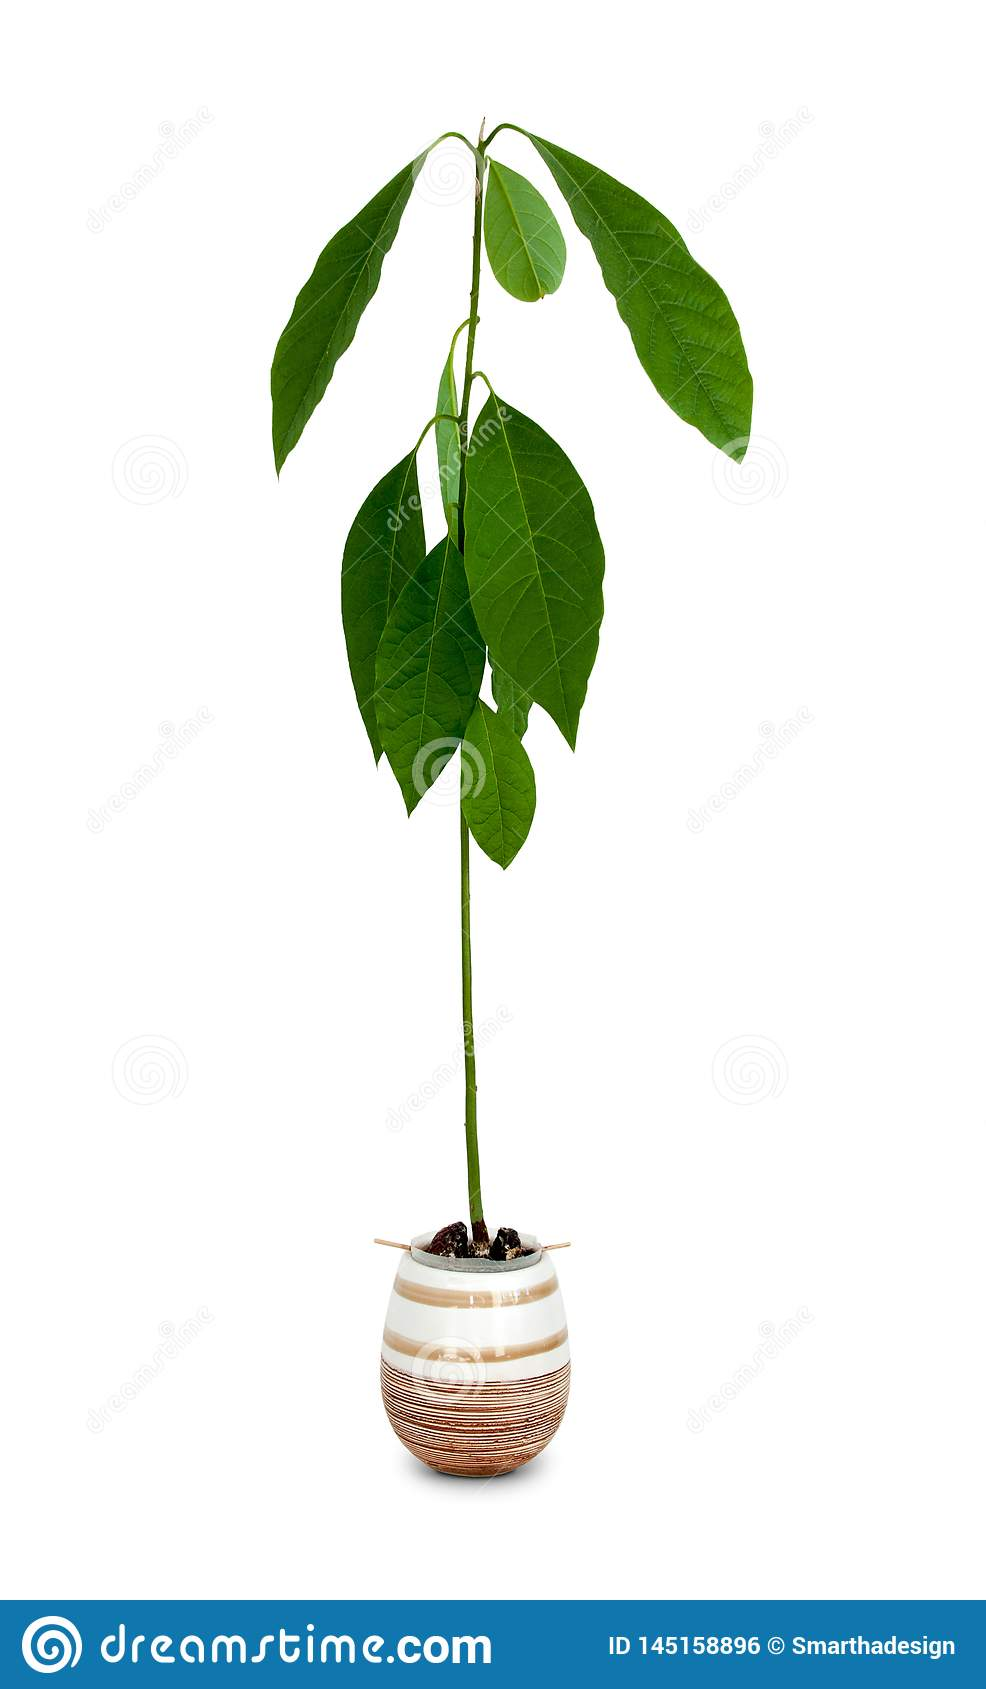 Young Avocado Tree Pictures